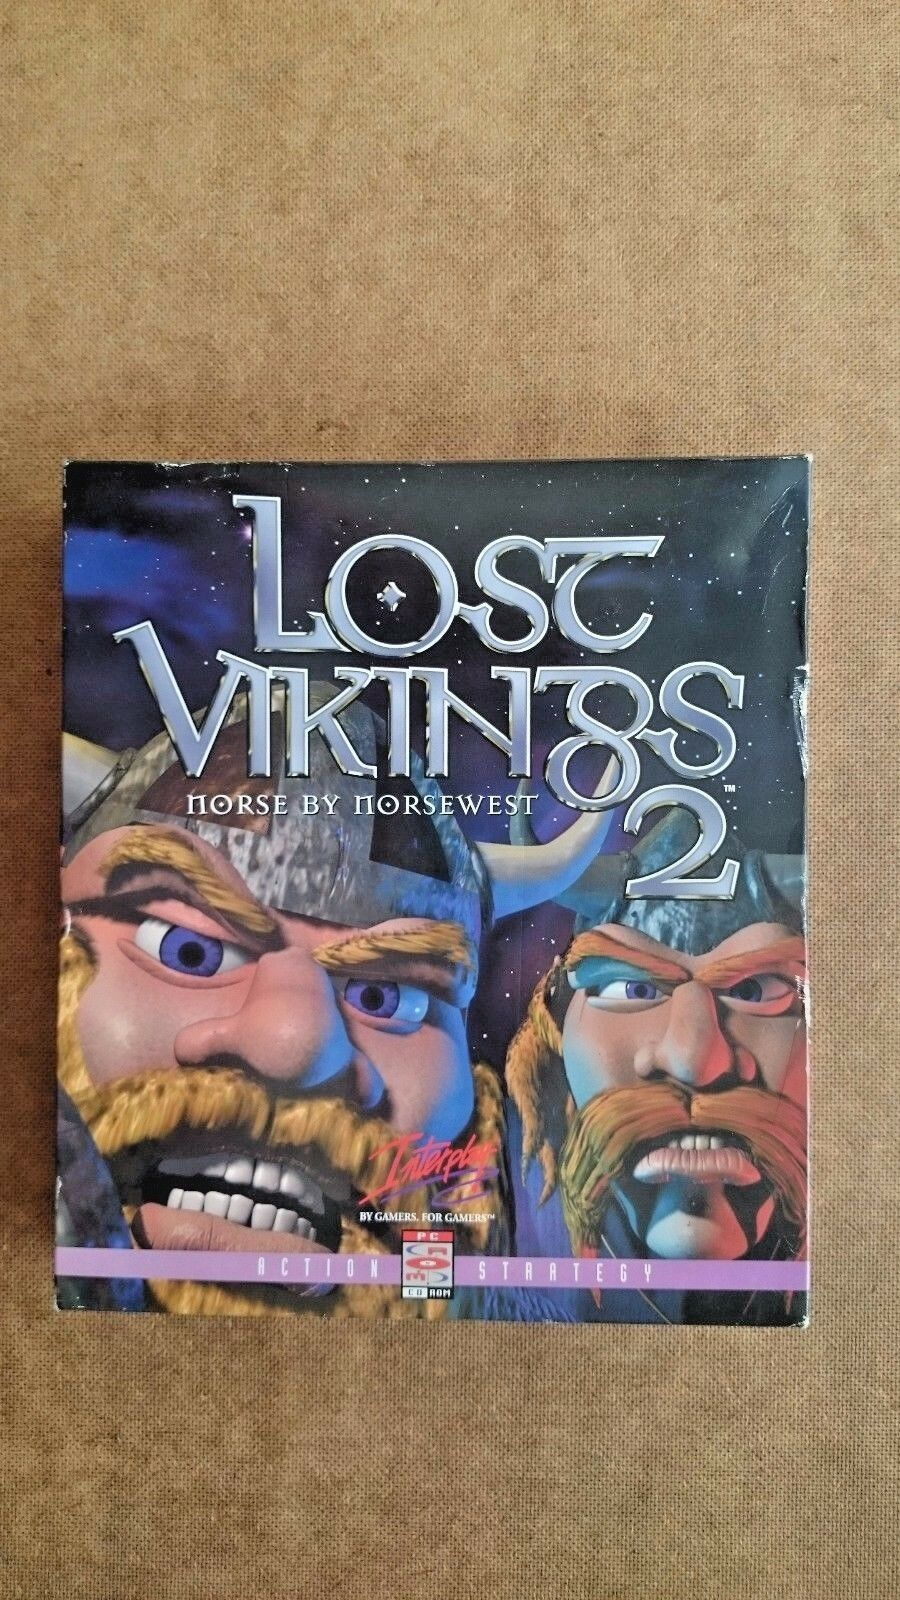 Lost Vikings 2 (PC: DOS/ Windows, 1997) - Big Box Edition